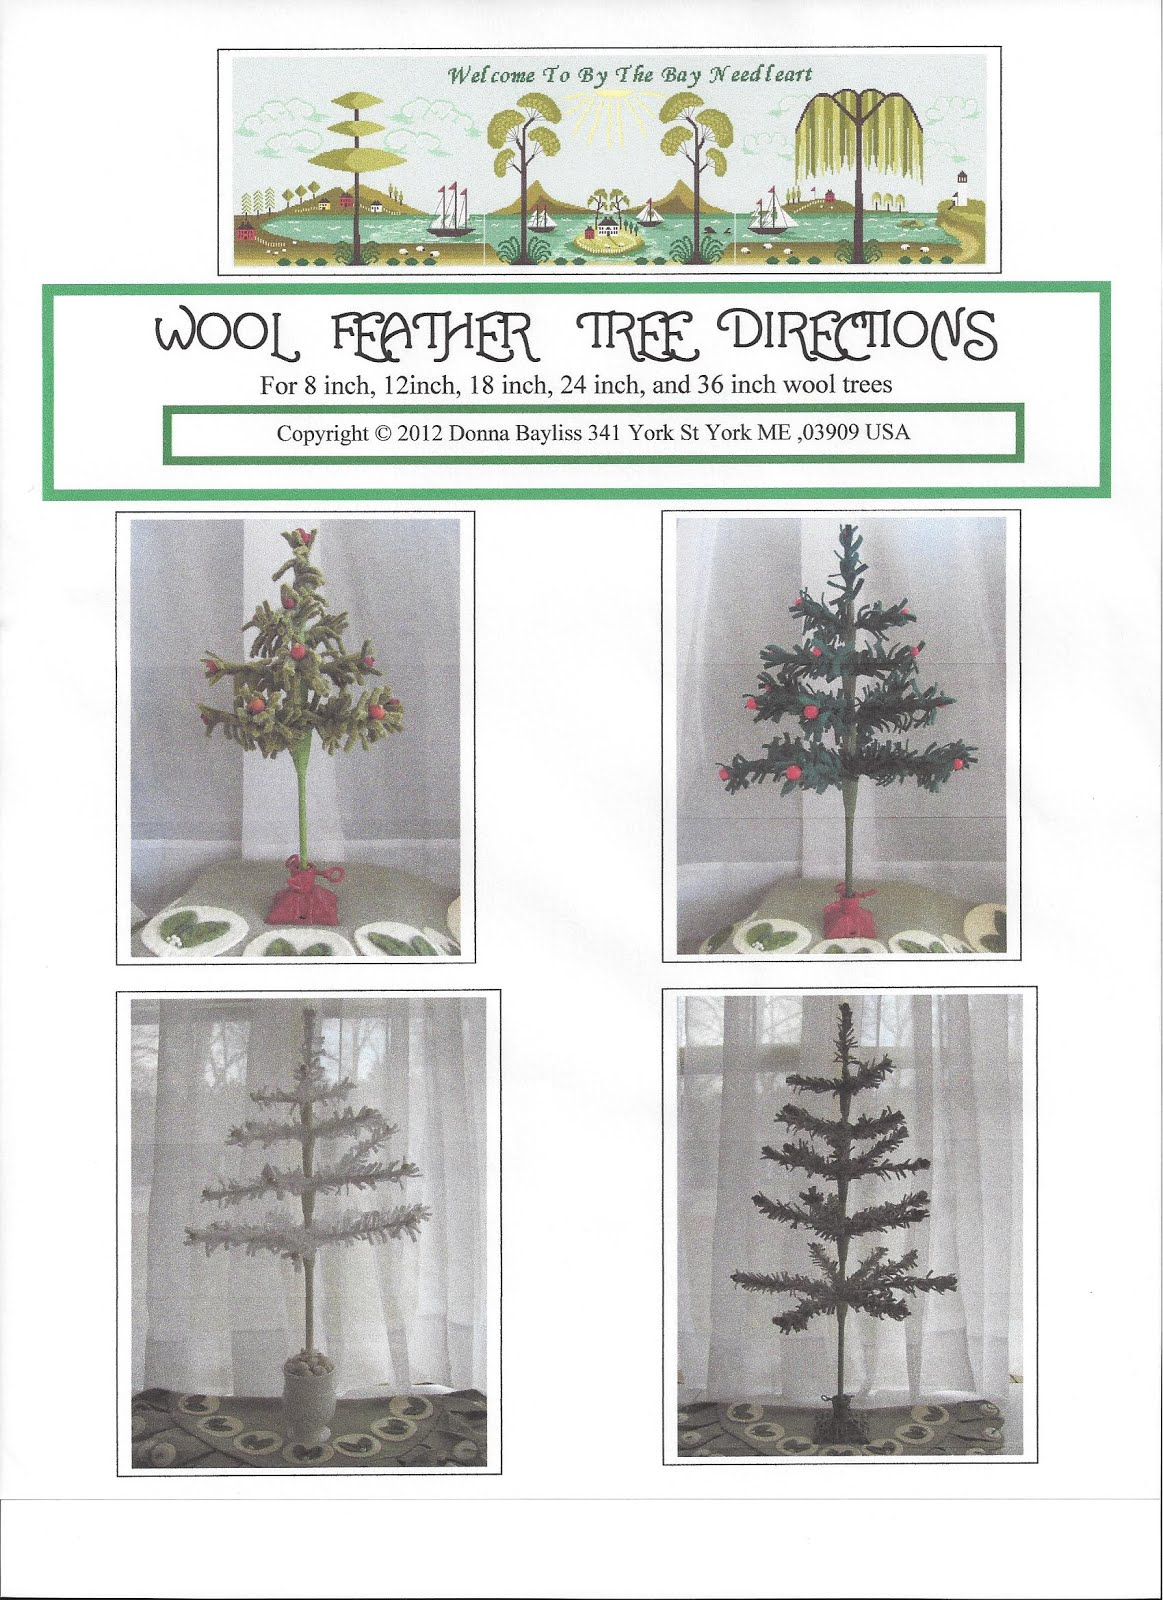 Click photo for Wool/Feather Tree Directions